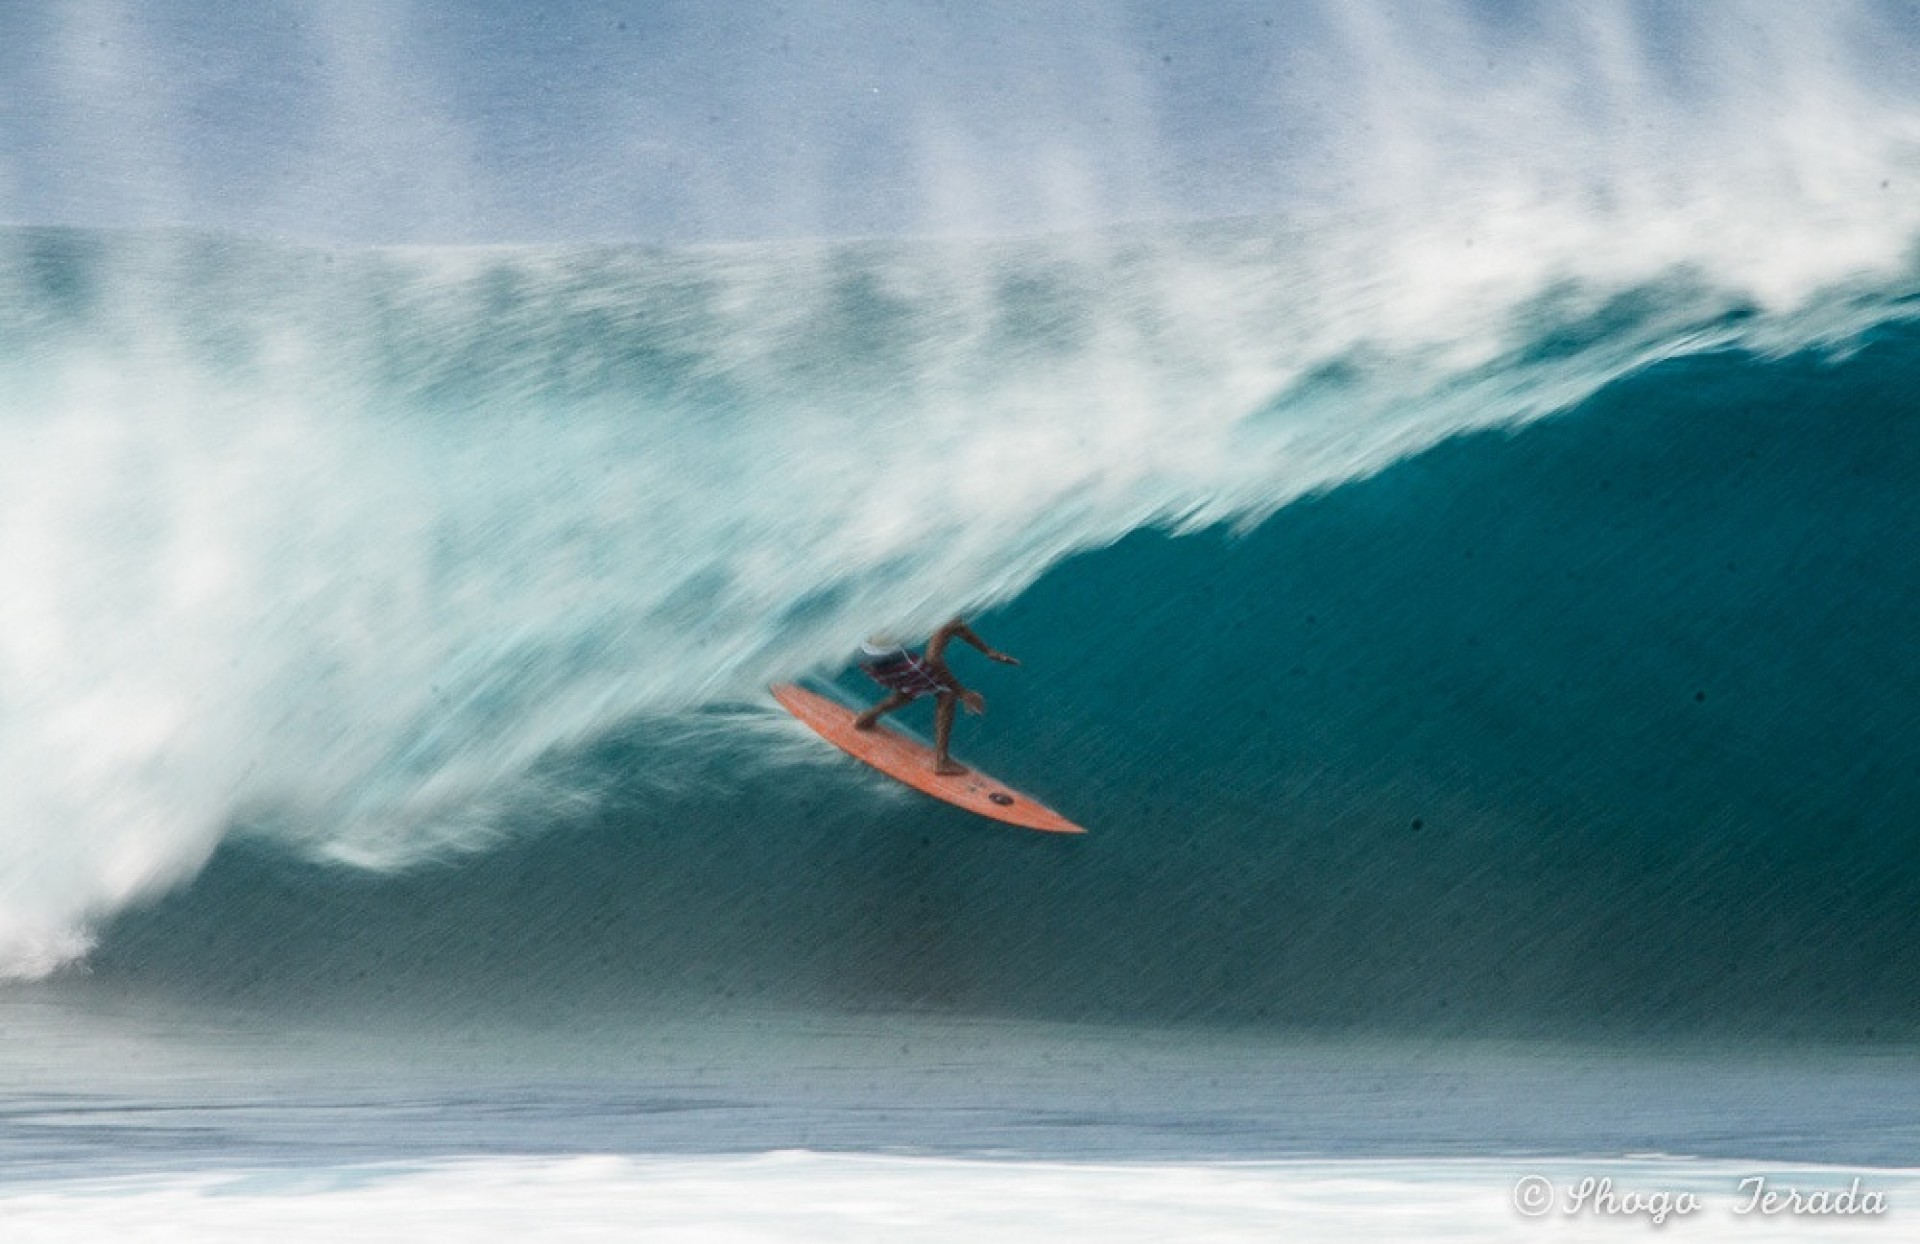 shogo's photo of Pipeline & Backdoor